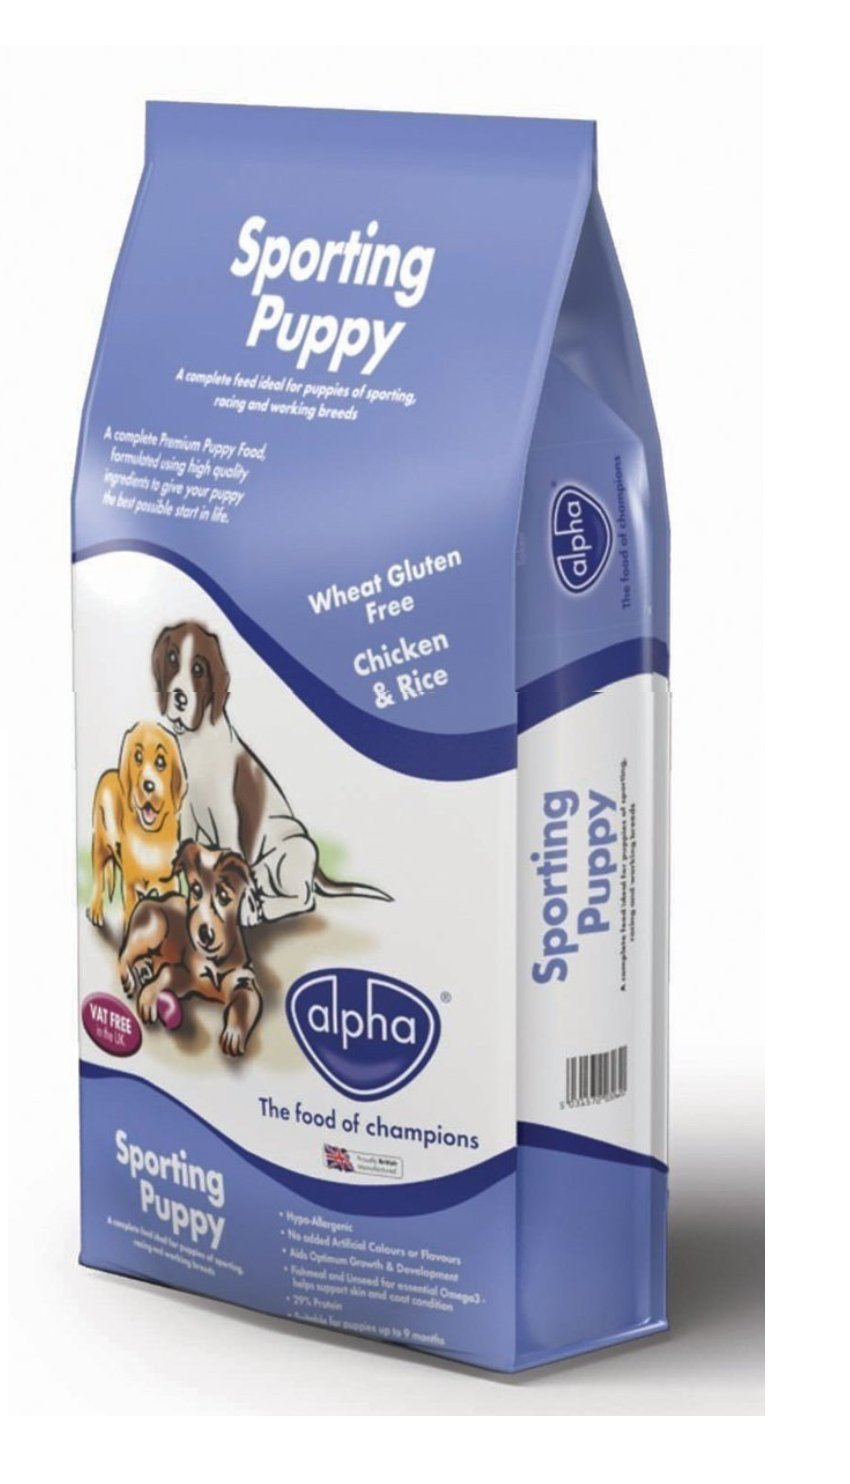 Alpha Sporting Puppy Food 15 Kg Amazon Co Uk Pet Supplies